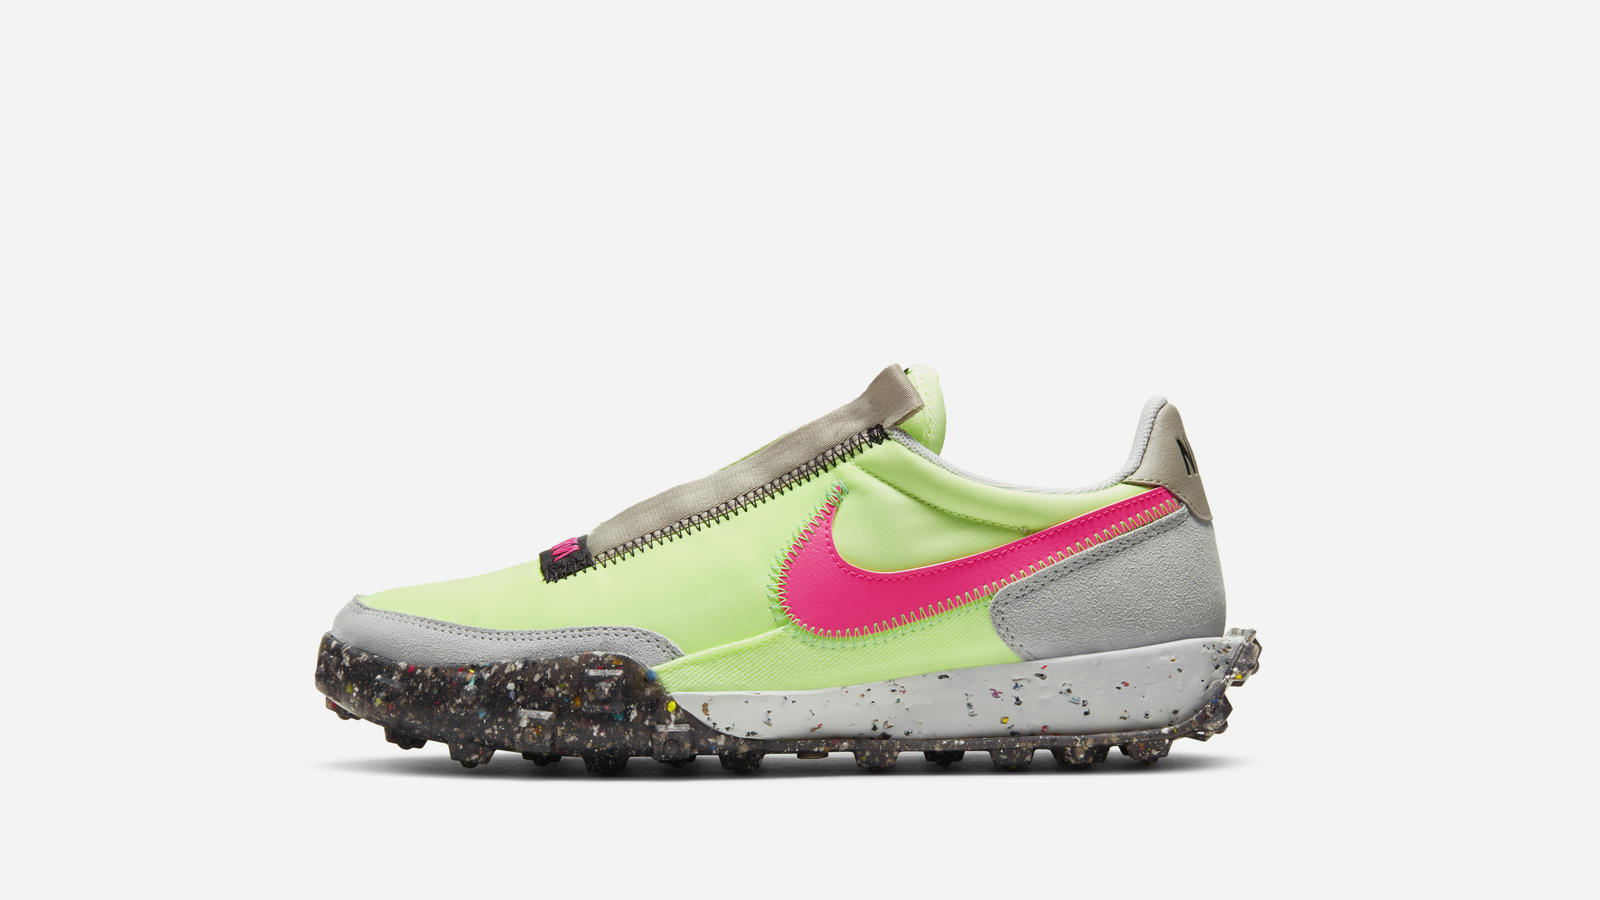 Nike Women's Waffle Racer Crater Official Images and Release Date 5